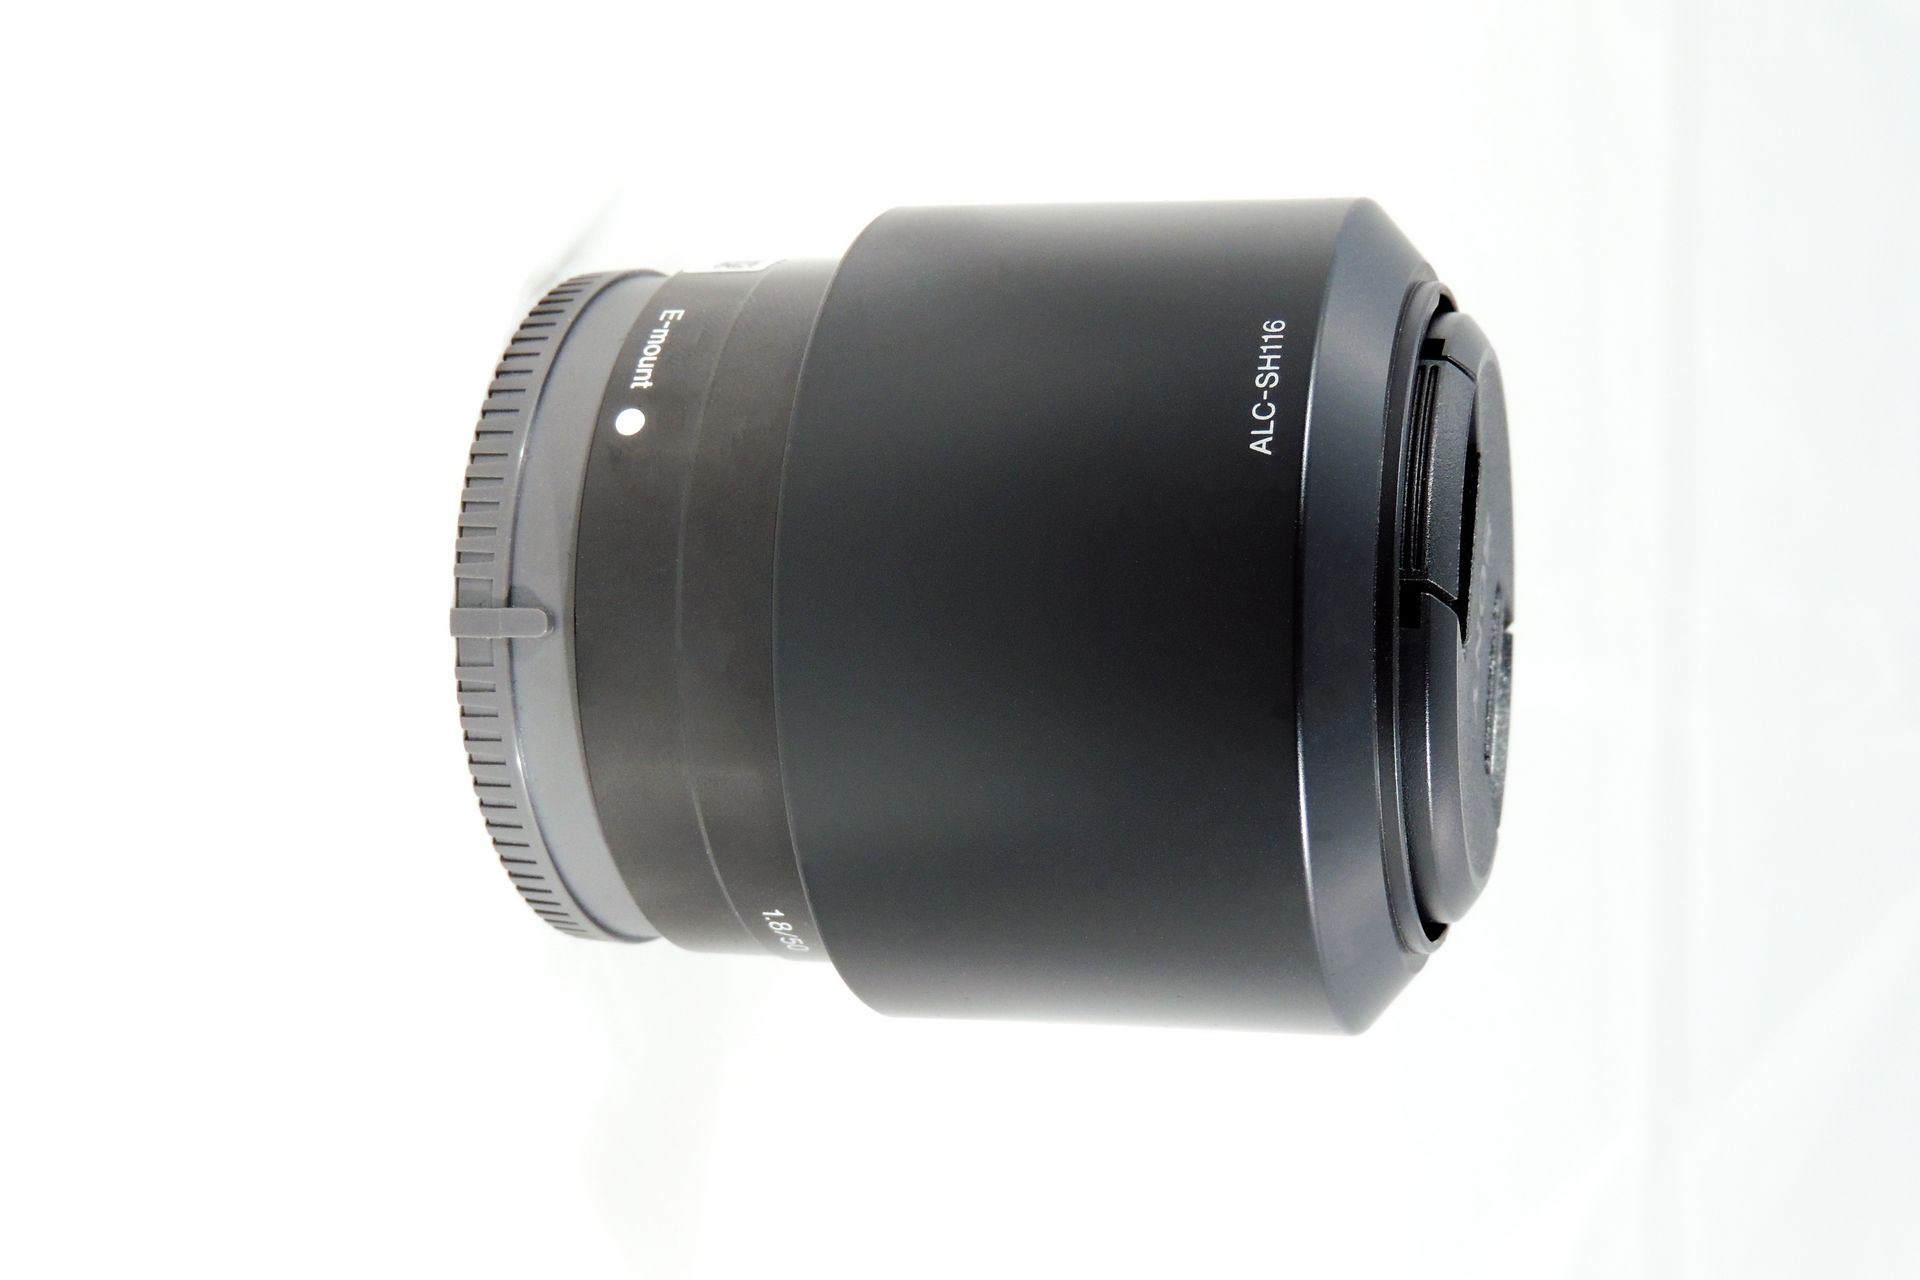 SONY 50 mm f/1.8 LENS WITH HOOD